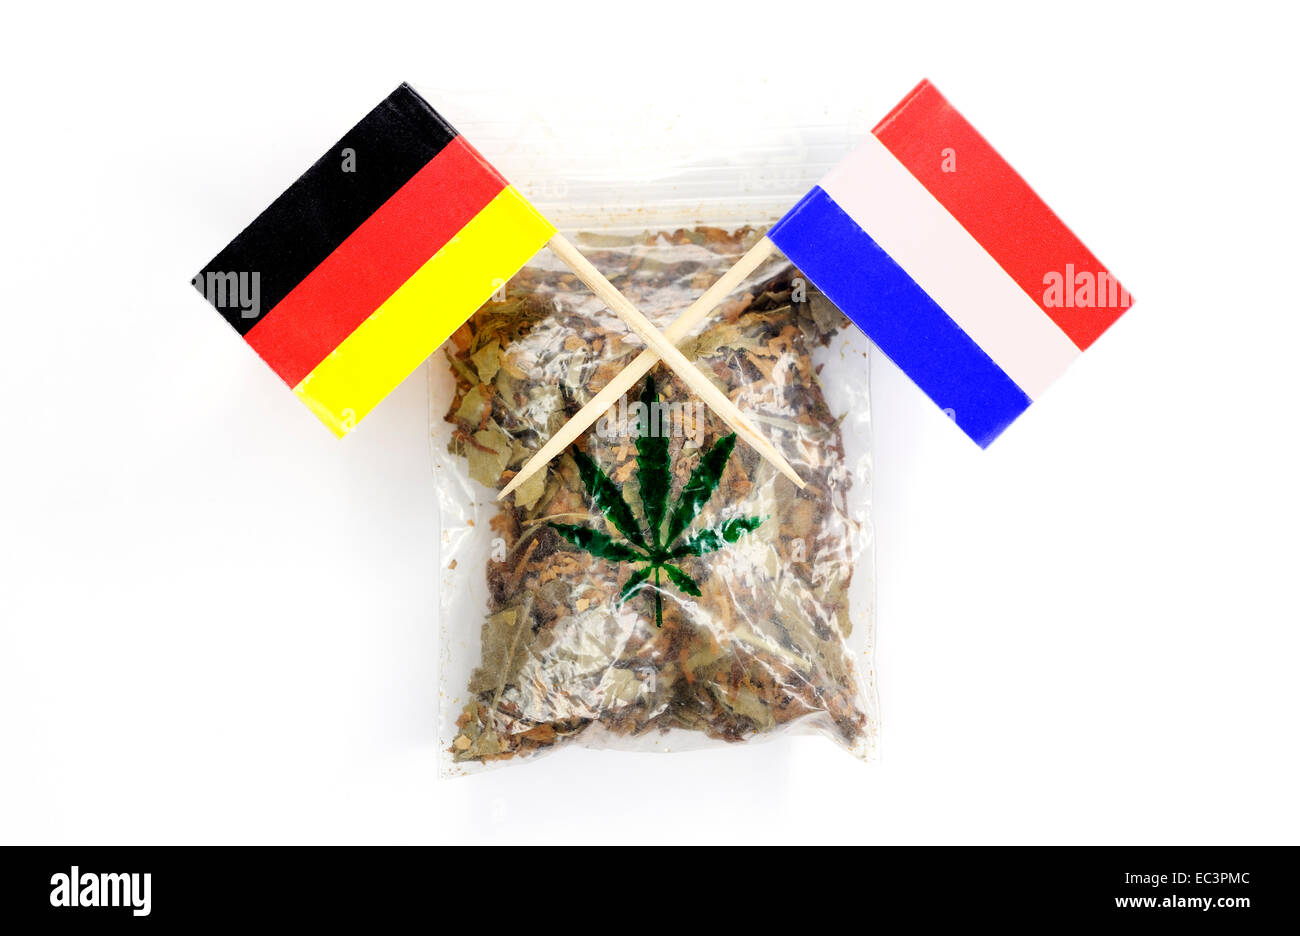 Hemp bag and banner of Germany and The Netherlands - Stock Image